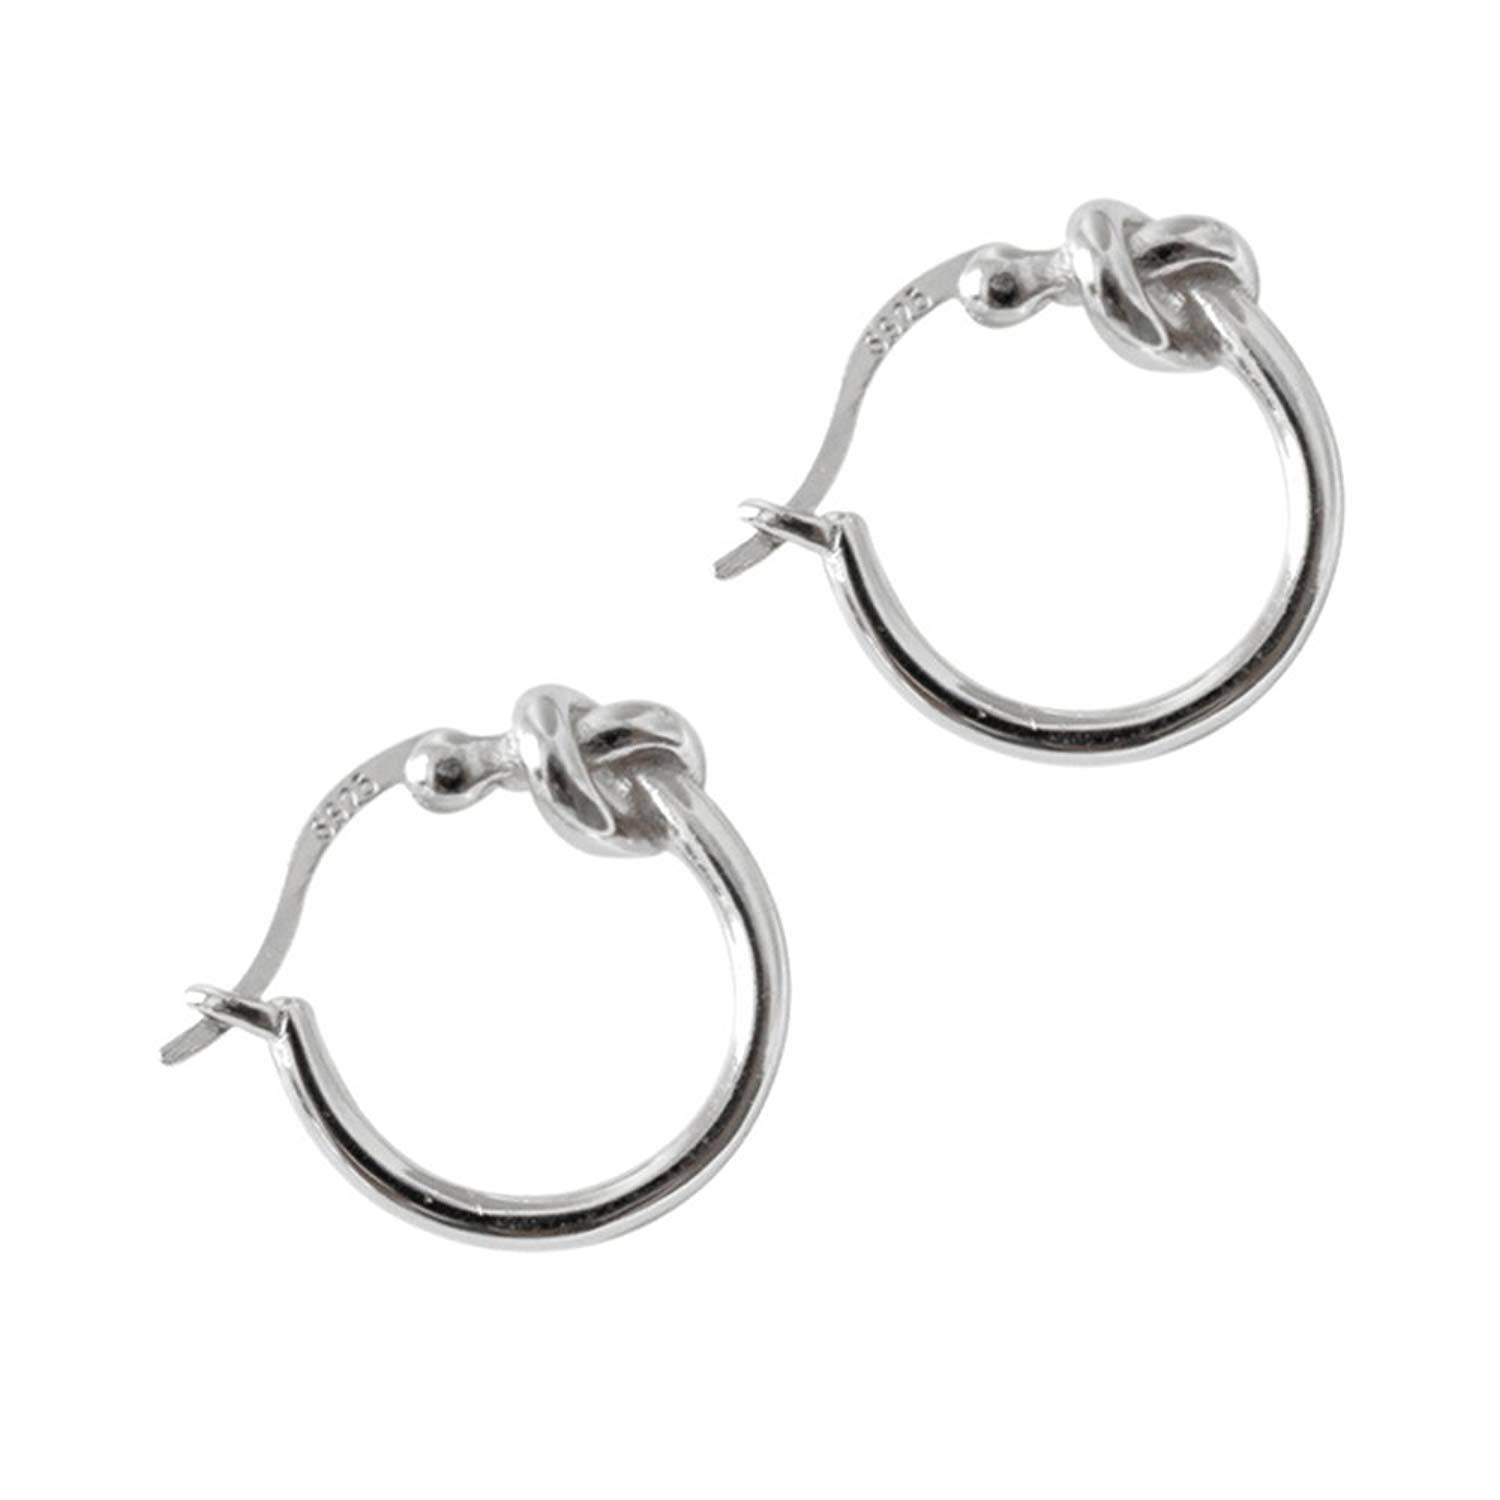 Micro Pav? Setting Oval Ear Studs With Cubic Zirconia Sterling Silver 925 Polished And Nickel Free Liara